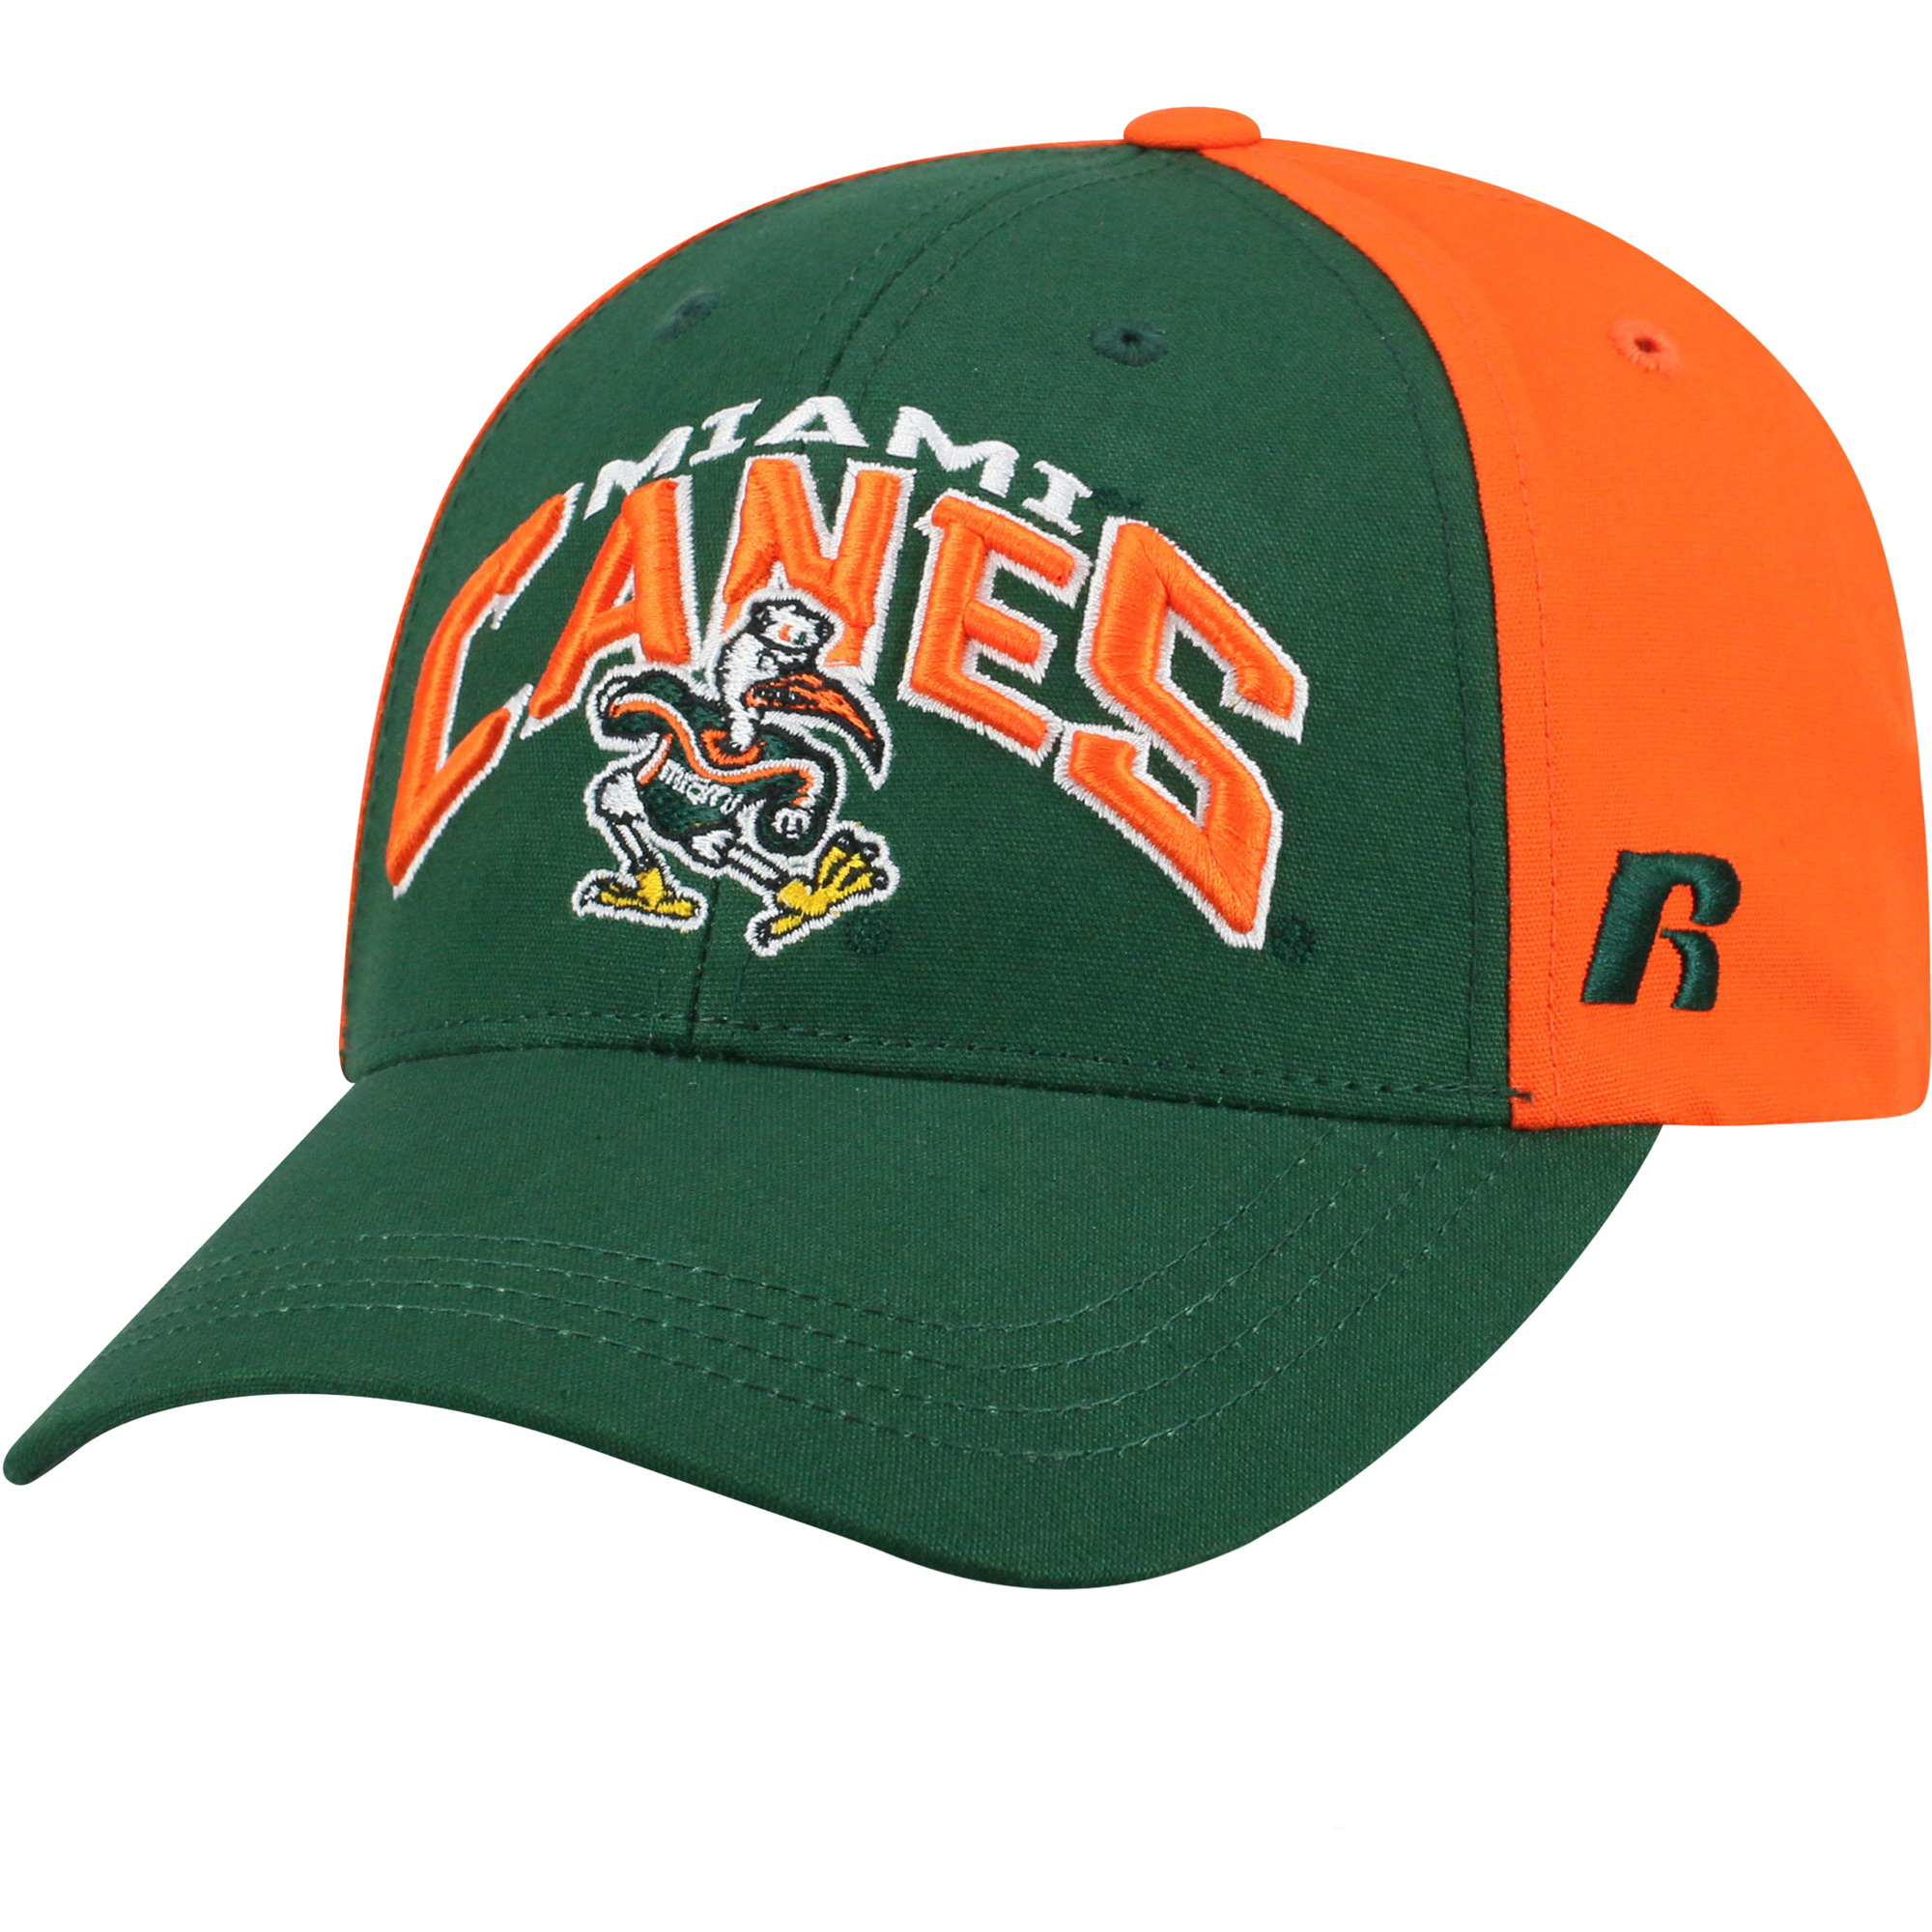 Men's Green/Orange Miami Hurricanes Tastic Adjustable Hat - OSFA